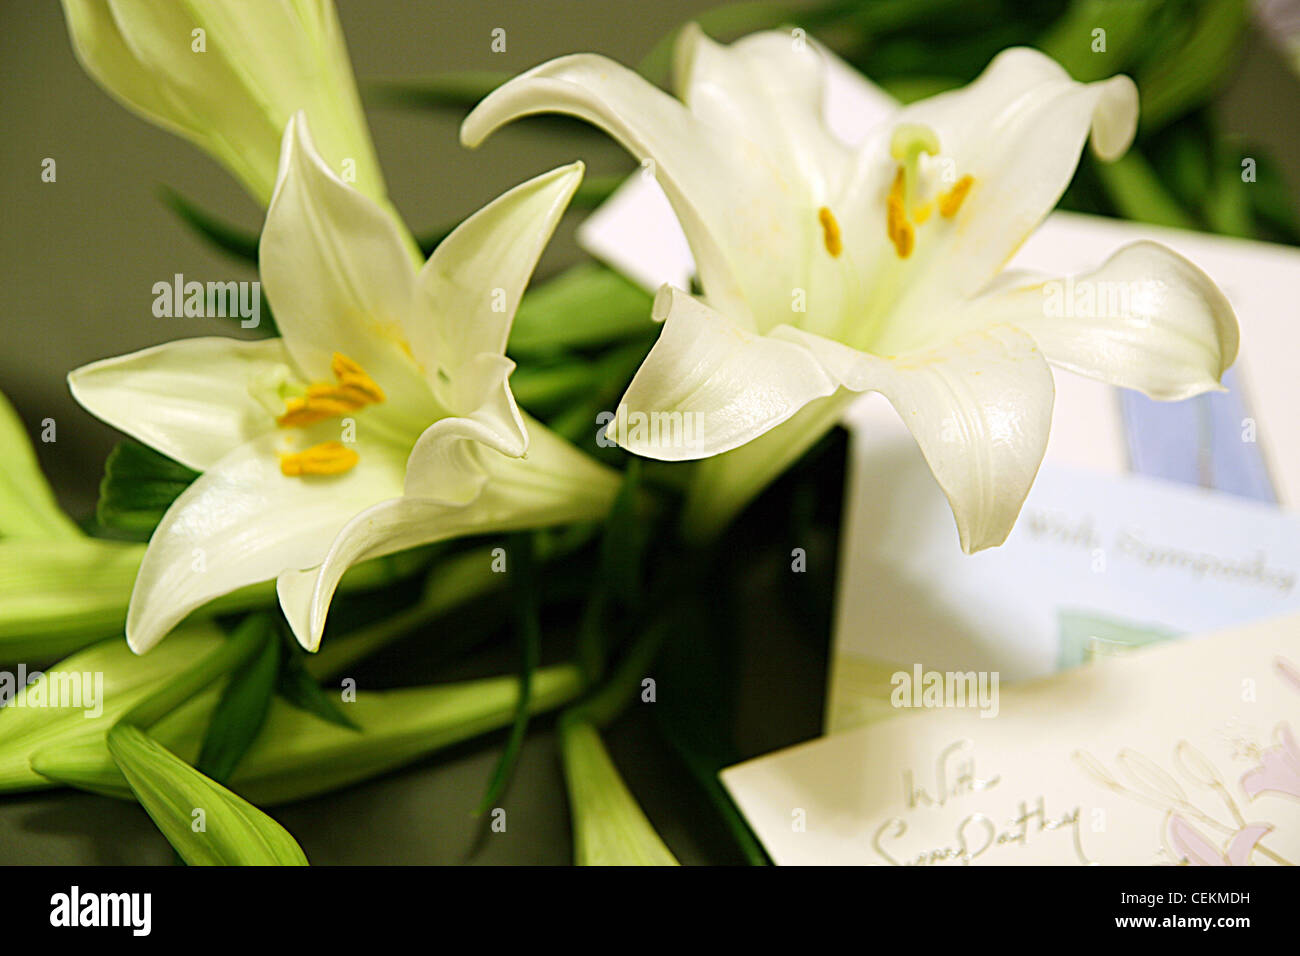 White lilies and with sympathy greetings cards stock photo white lilies and with sympathy greetings cards kristyandbryce Choice Image